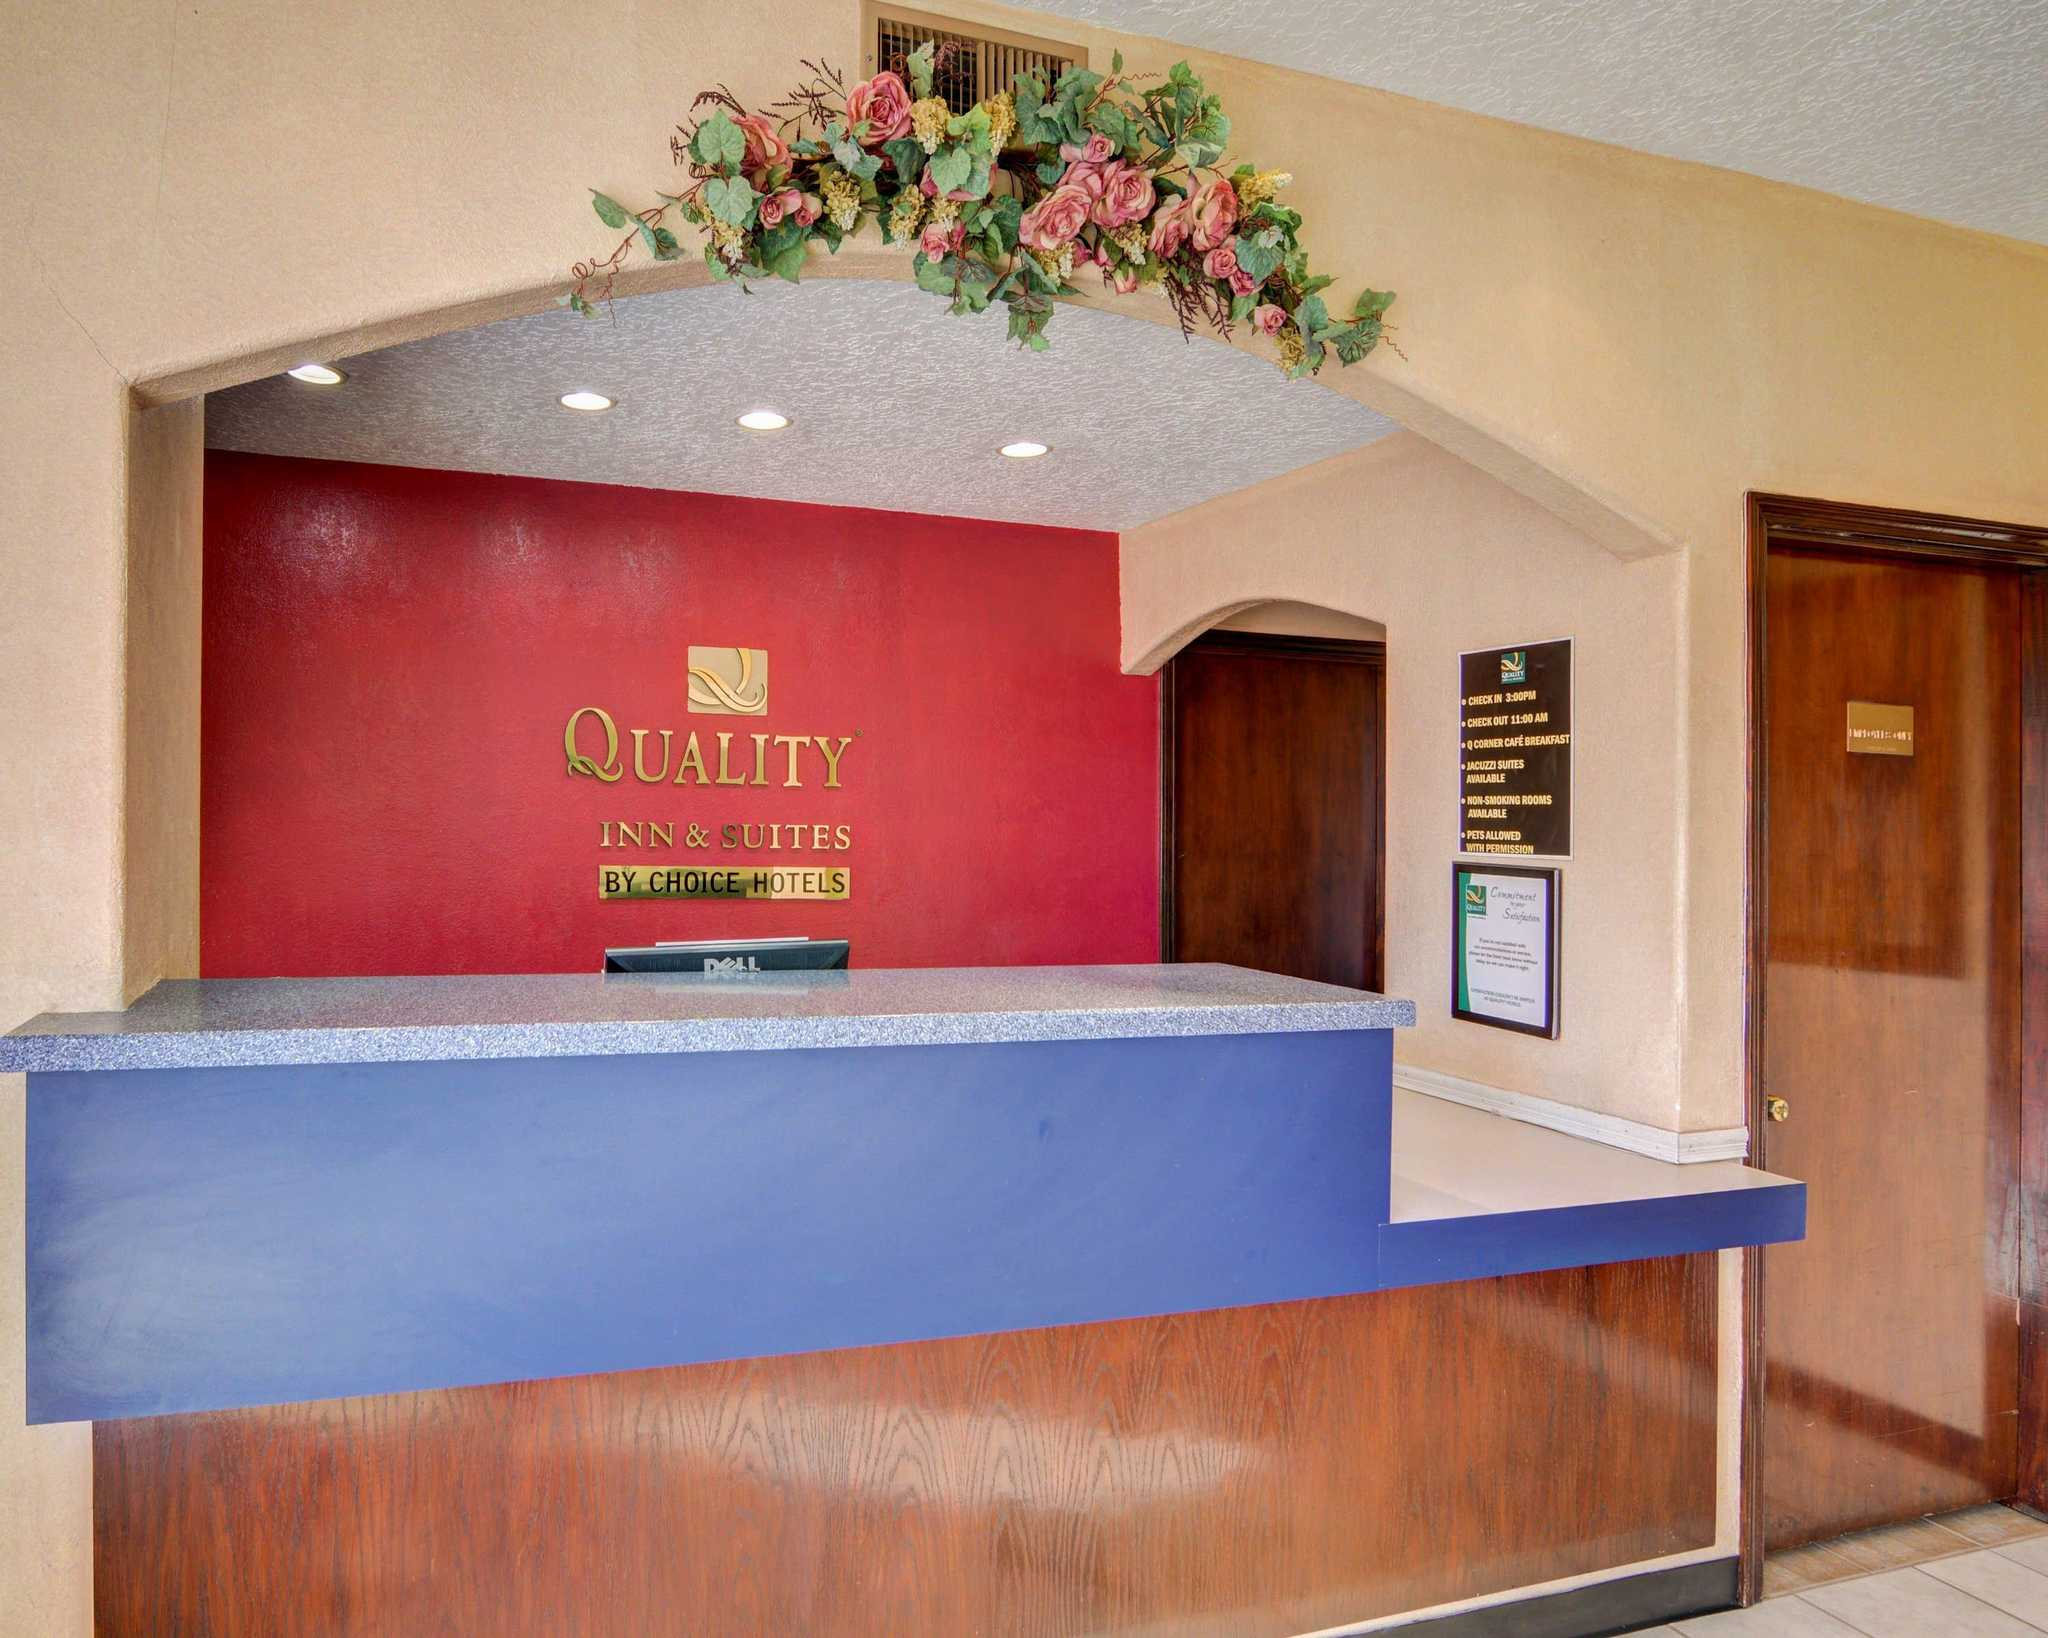 Quality Inn & Suites Canton image 11